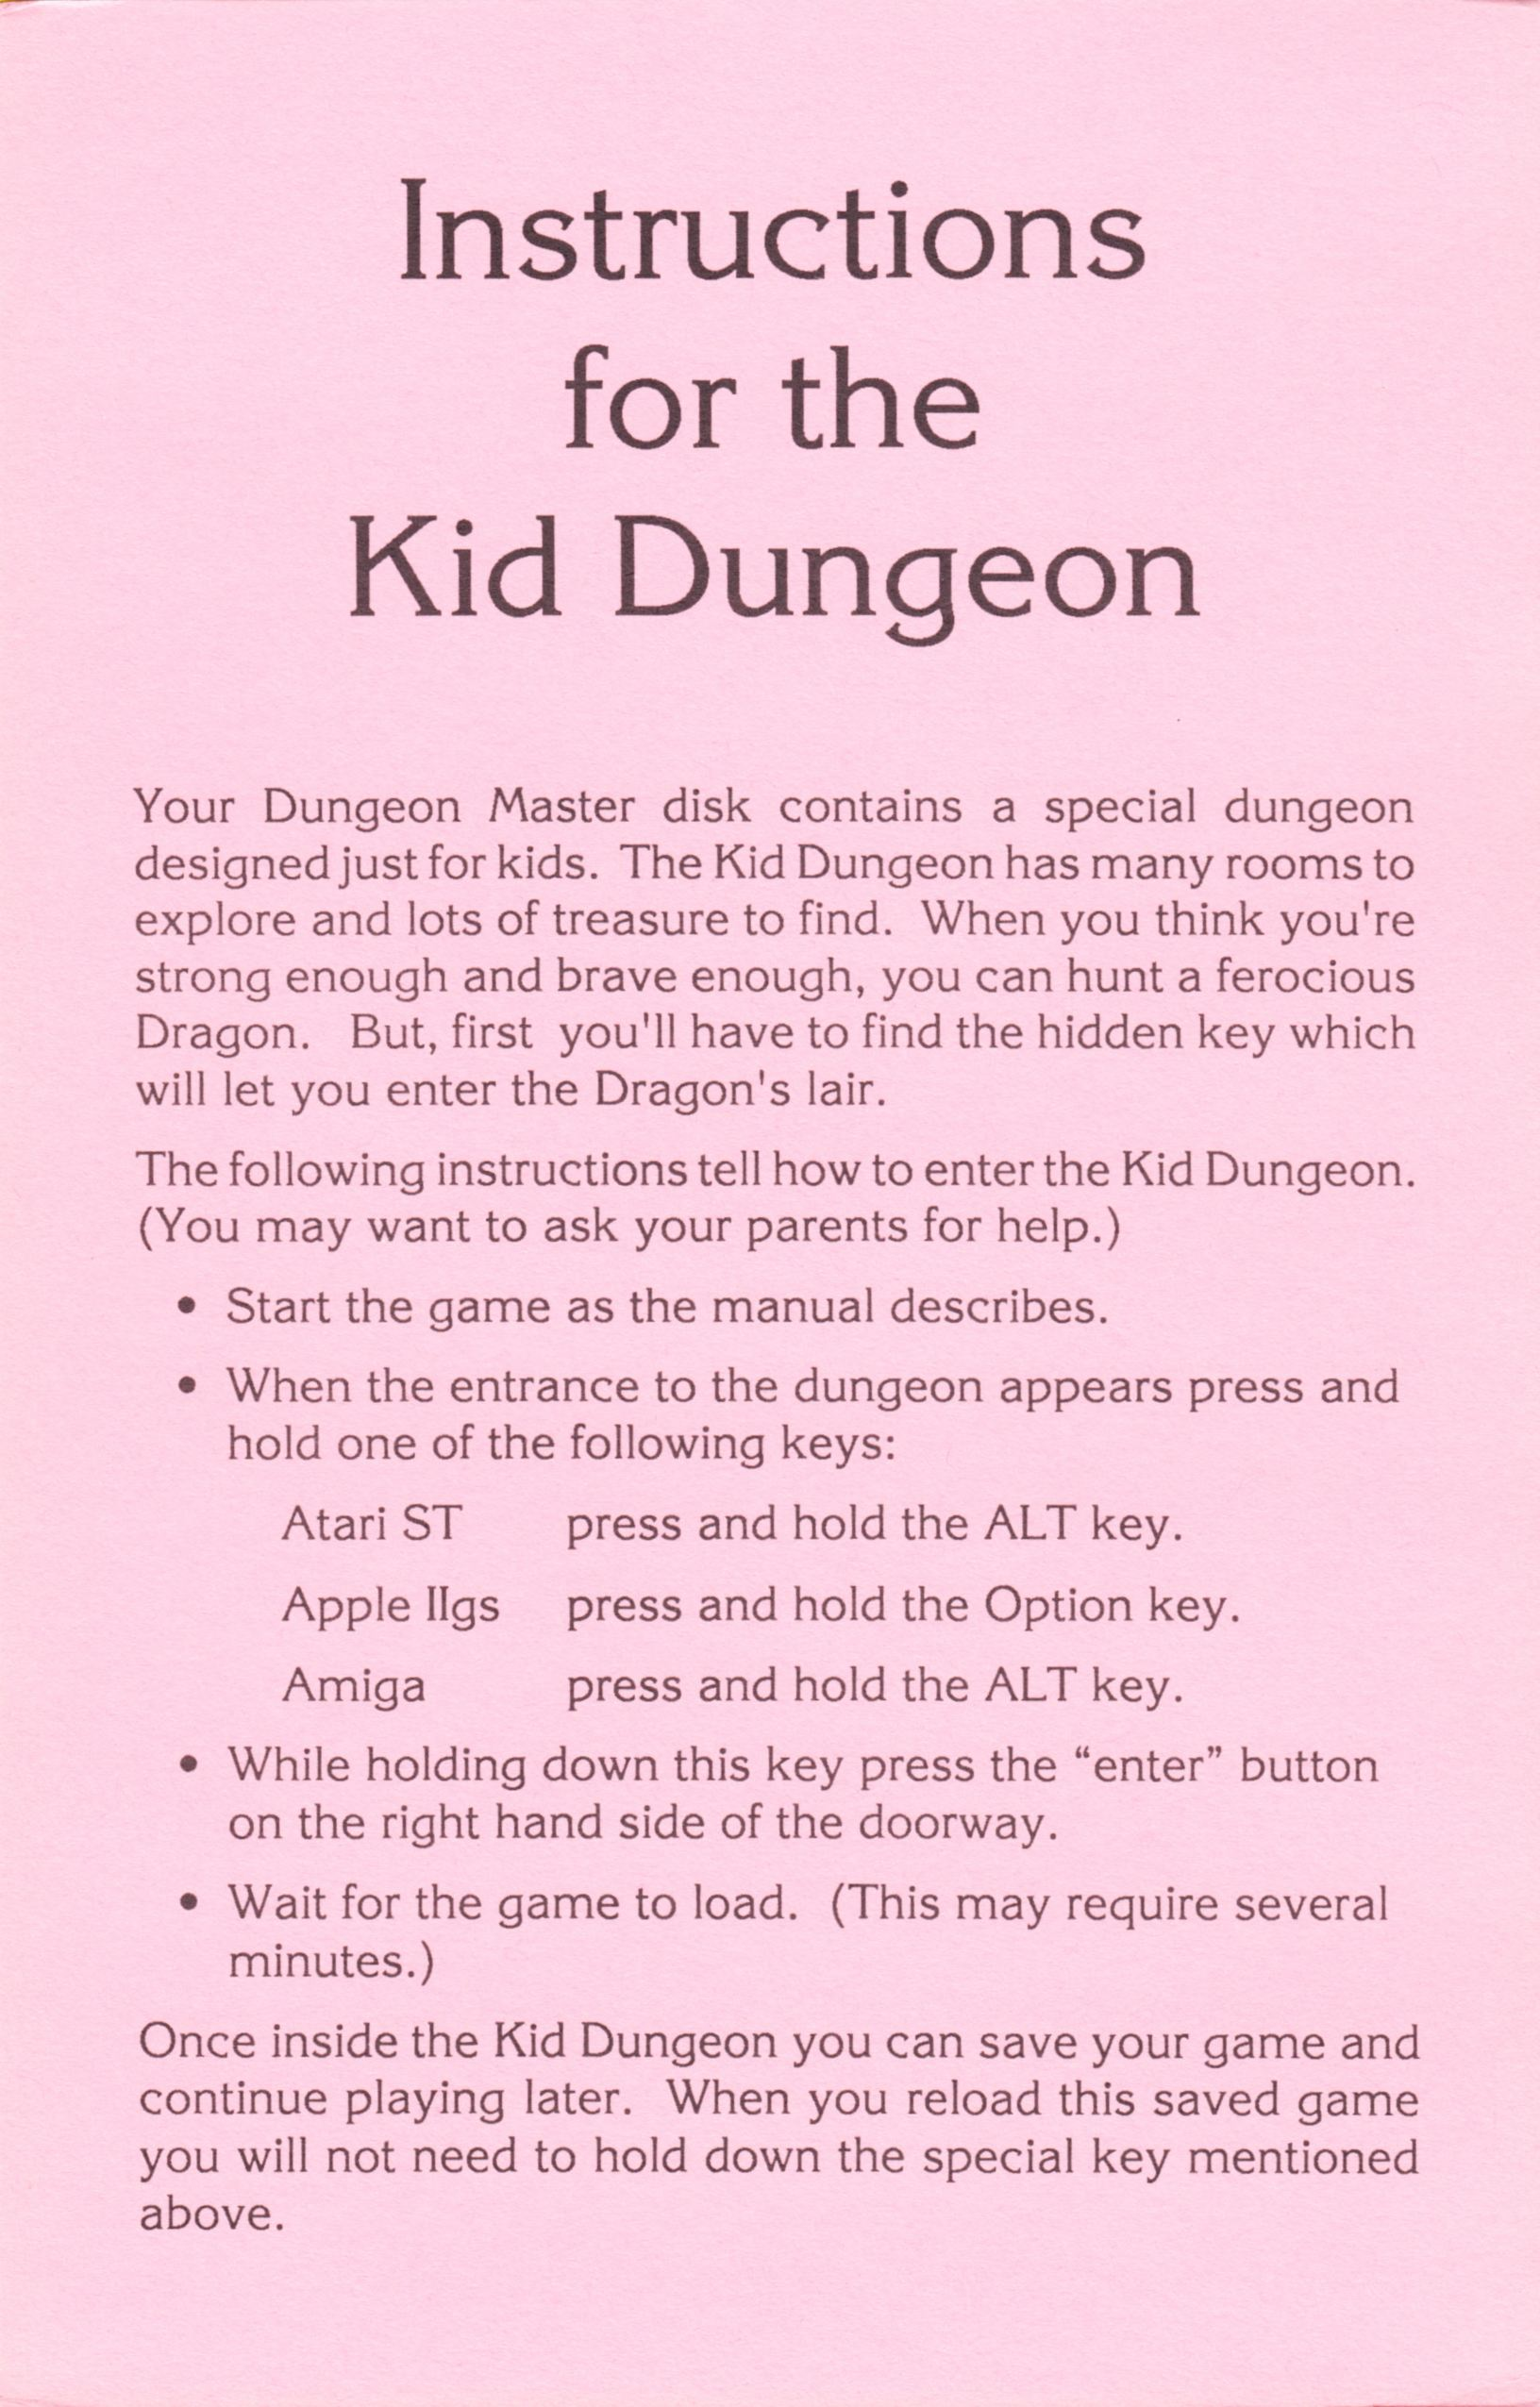 Game - Dungeon Master - US - Apple IIGS - Kid Dungeon Instructions - Front - Scan